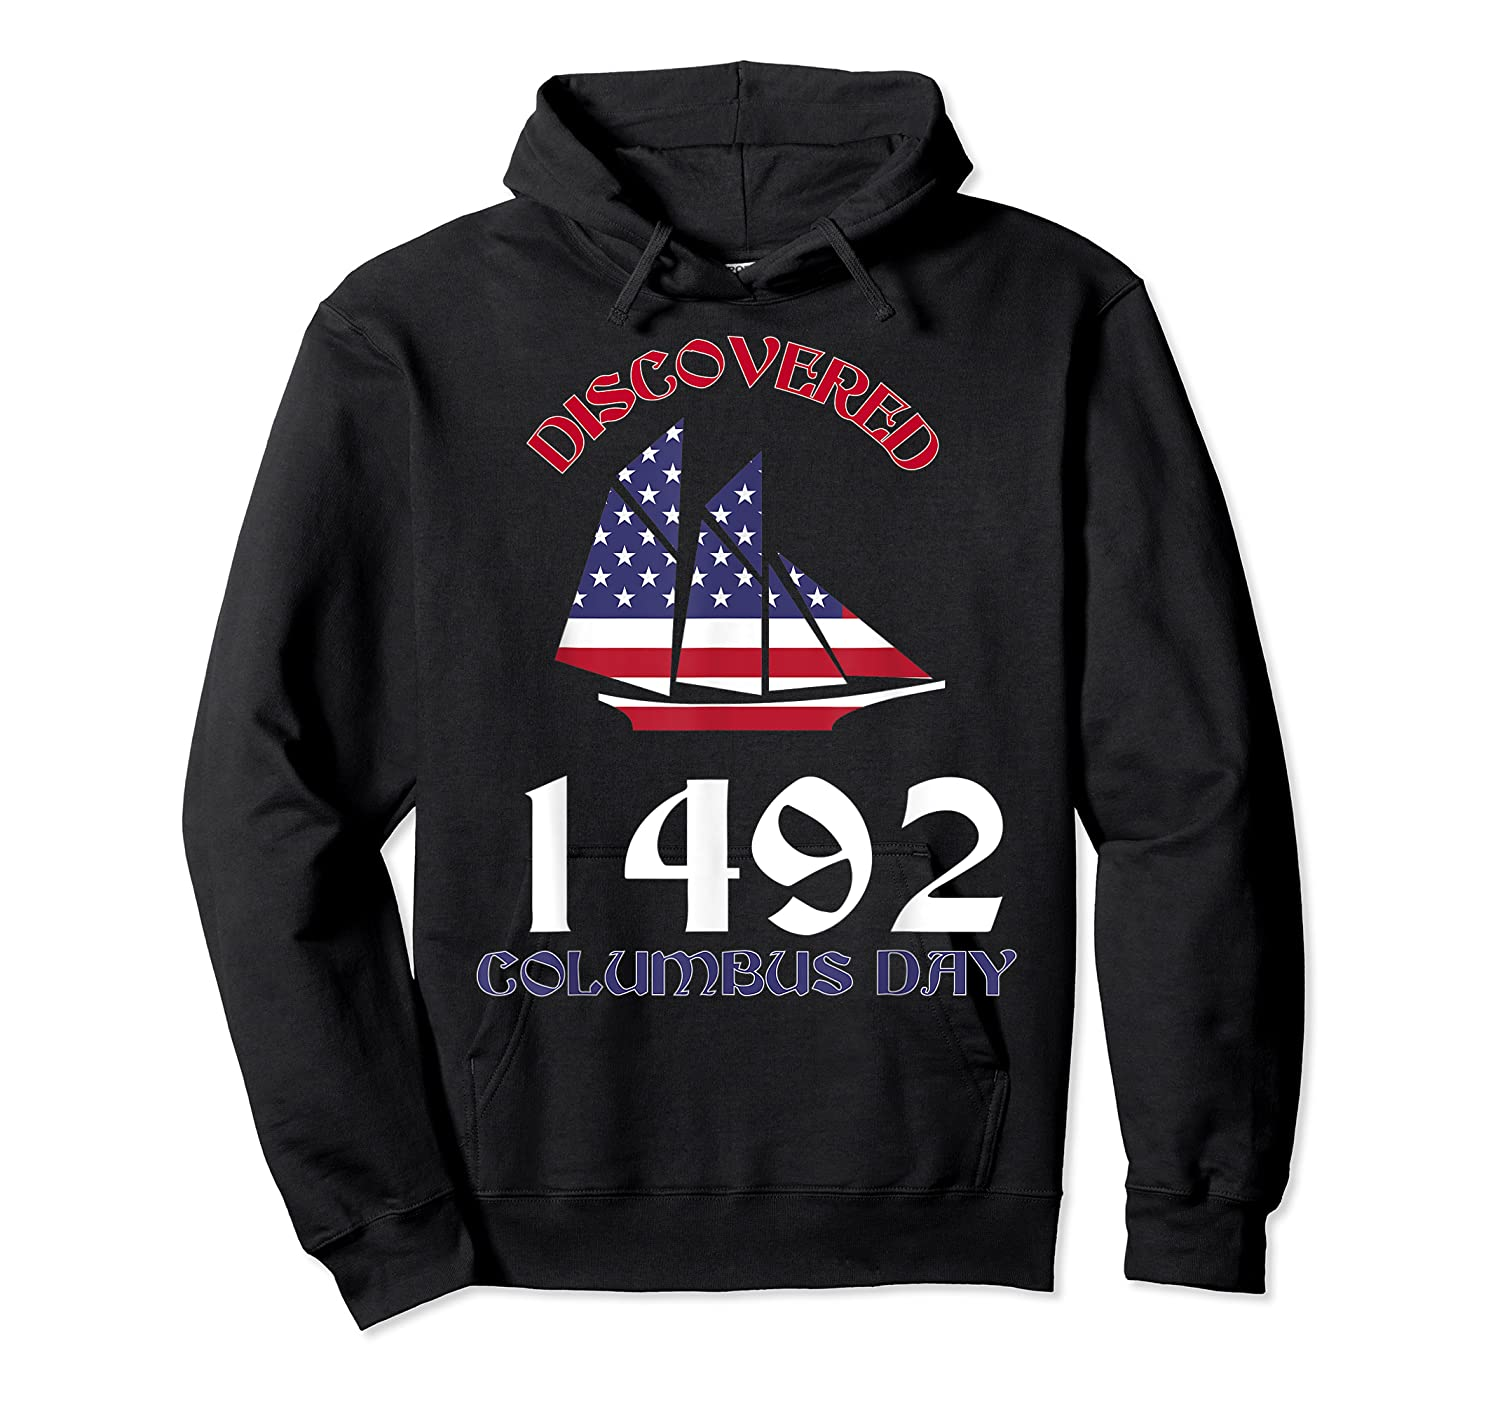 Discovered 1492 Columbus Day Shirts Unisex Pullover Hoodie